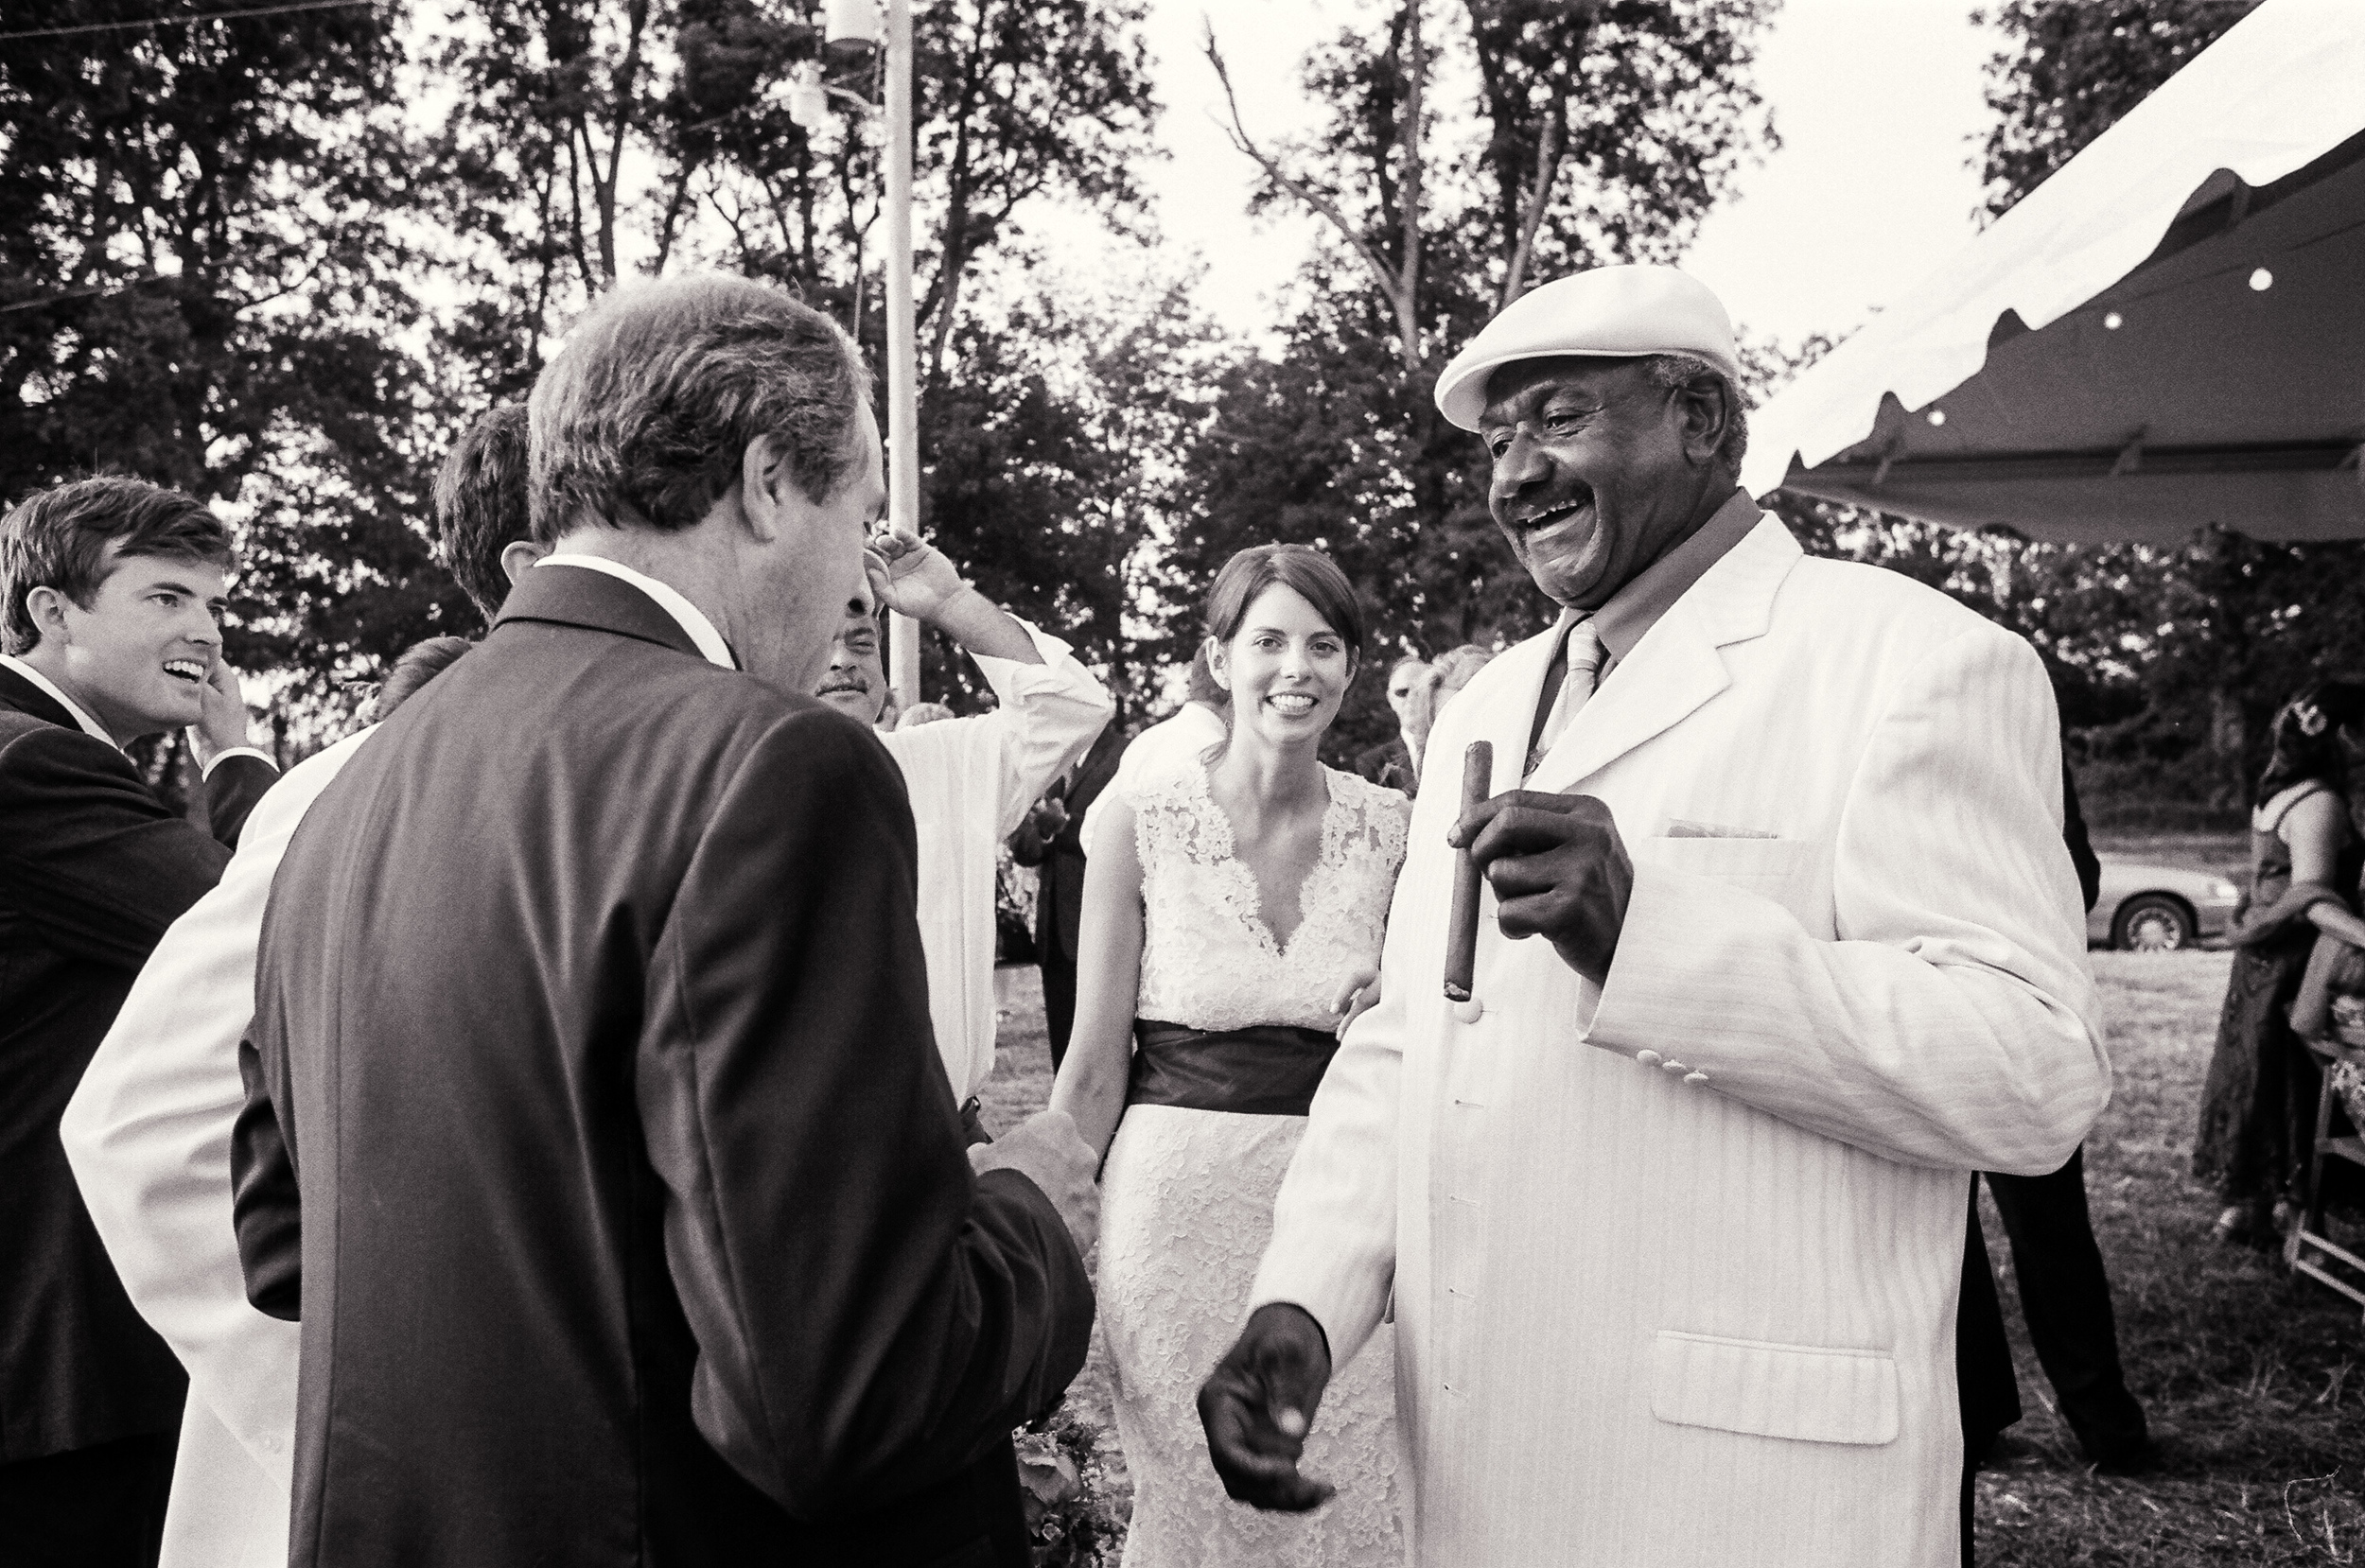 Willie Seaberry (right), aka Po' Monkey, celebrates with guests at Kate (background) and John's wedding in June 2006.